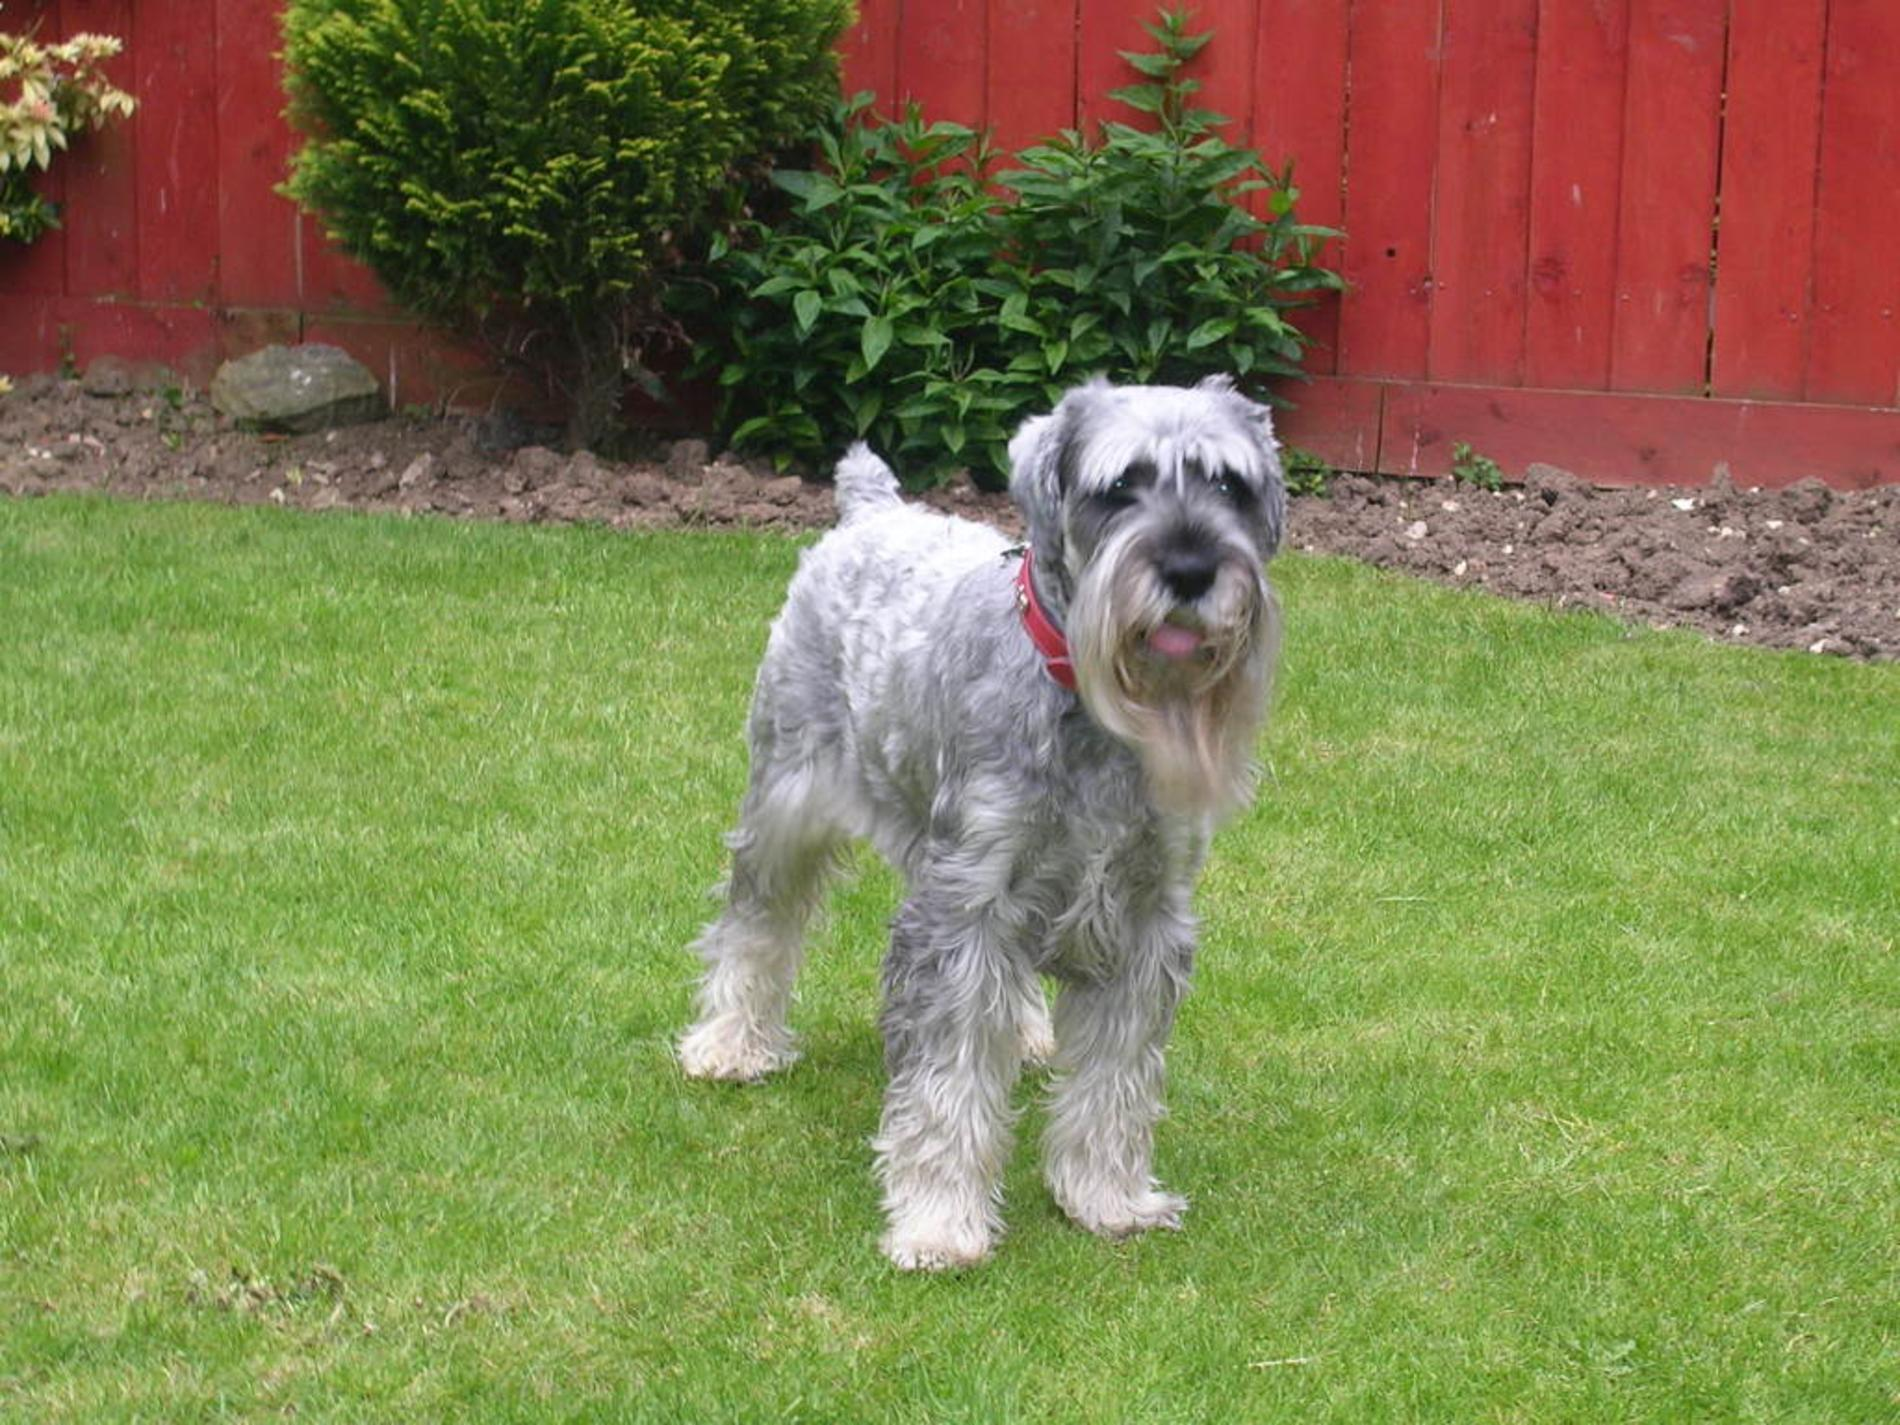 Schnauzer, Standard dog on the grass wallpaper